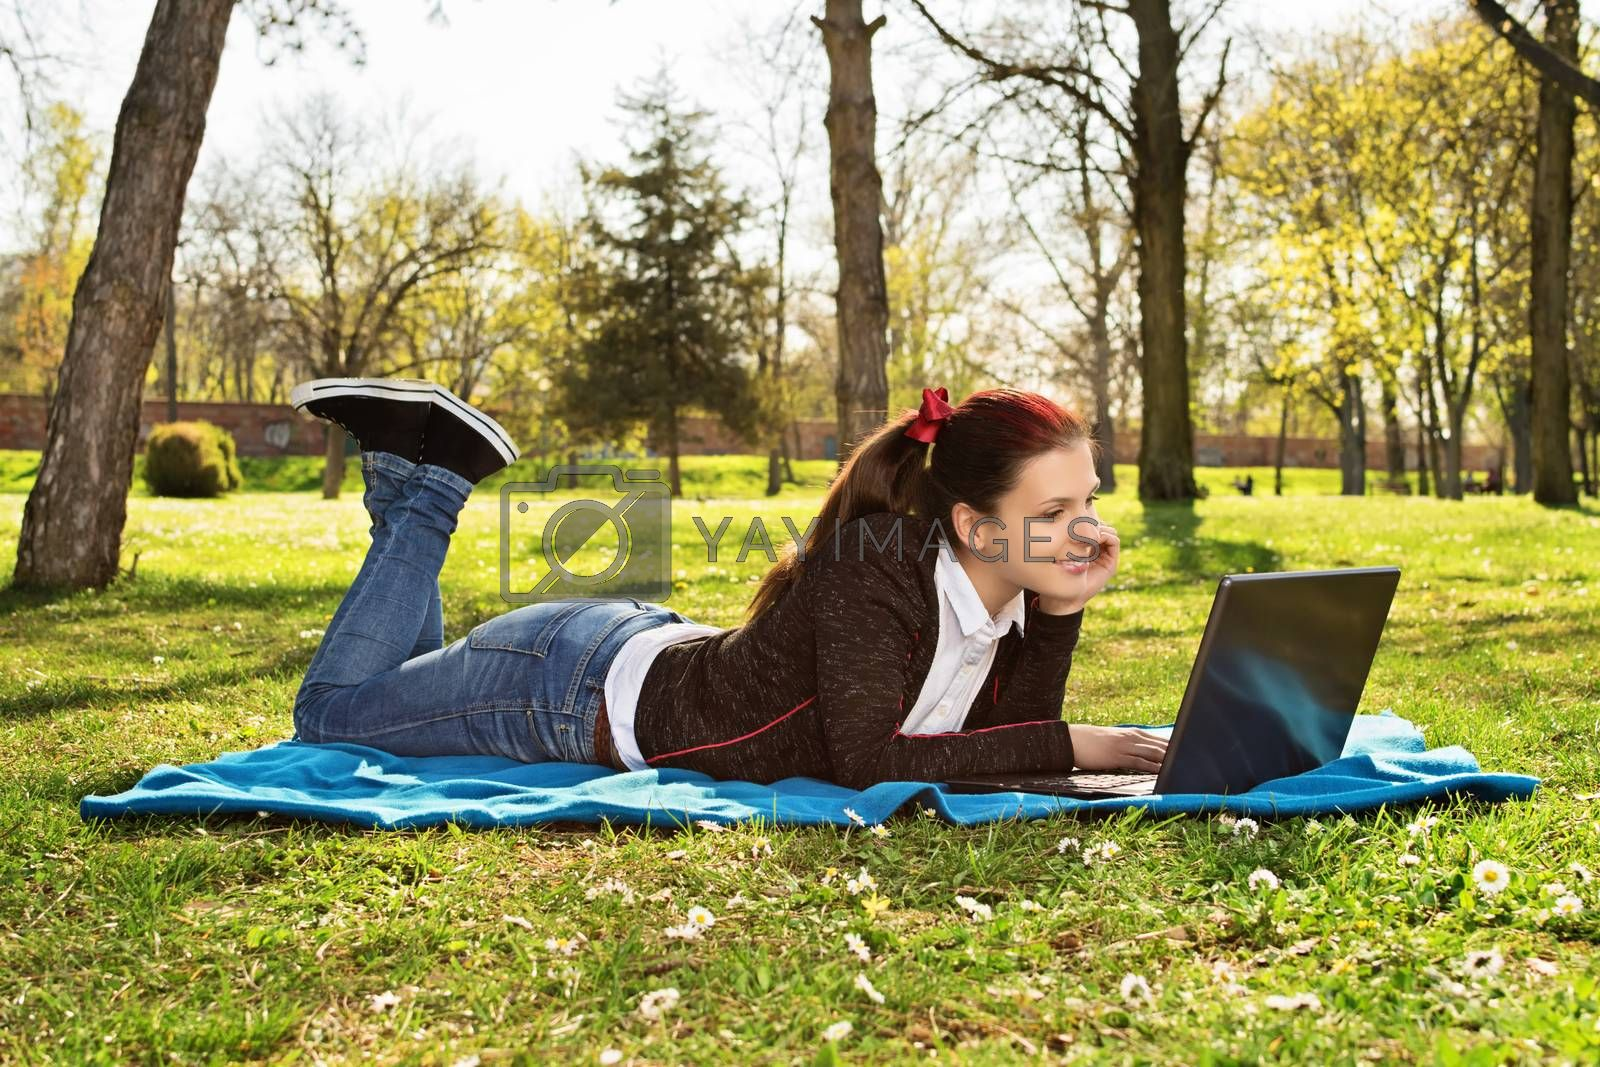 Beautiful casual student girl with laptop outdoors. Smiling woman lying on a blanket on the grass with computer, surfing on the Internet or preparing for exams. Technology, education and remote working concept.